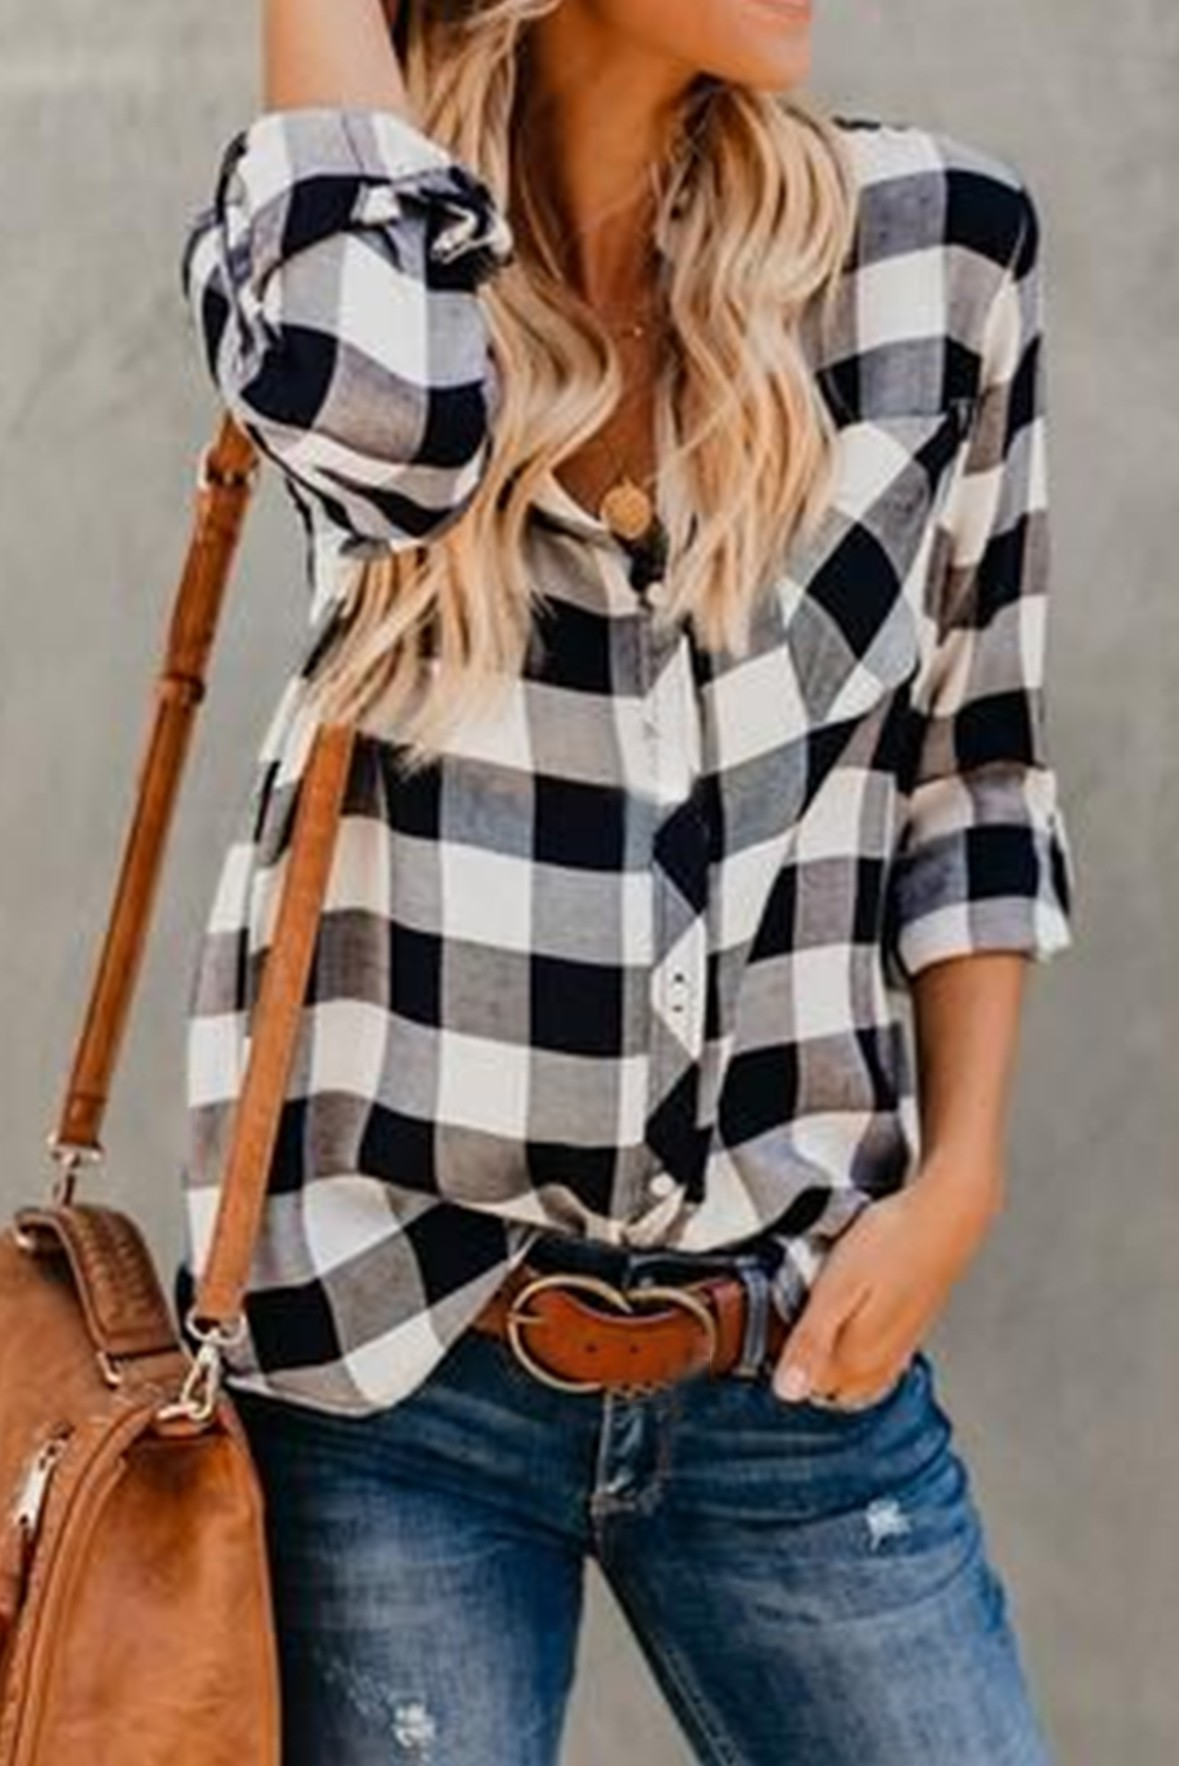 Chilling in the plaids shirt